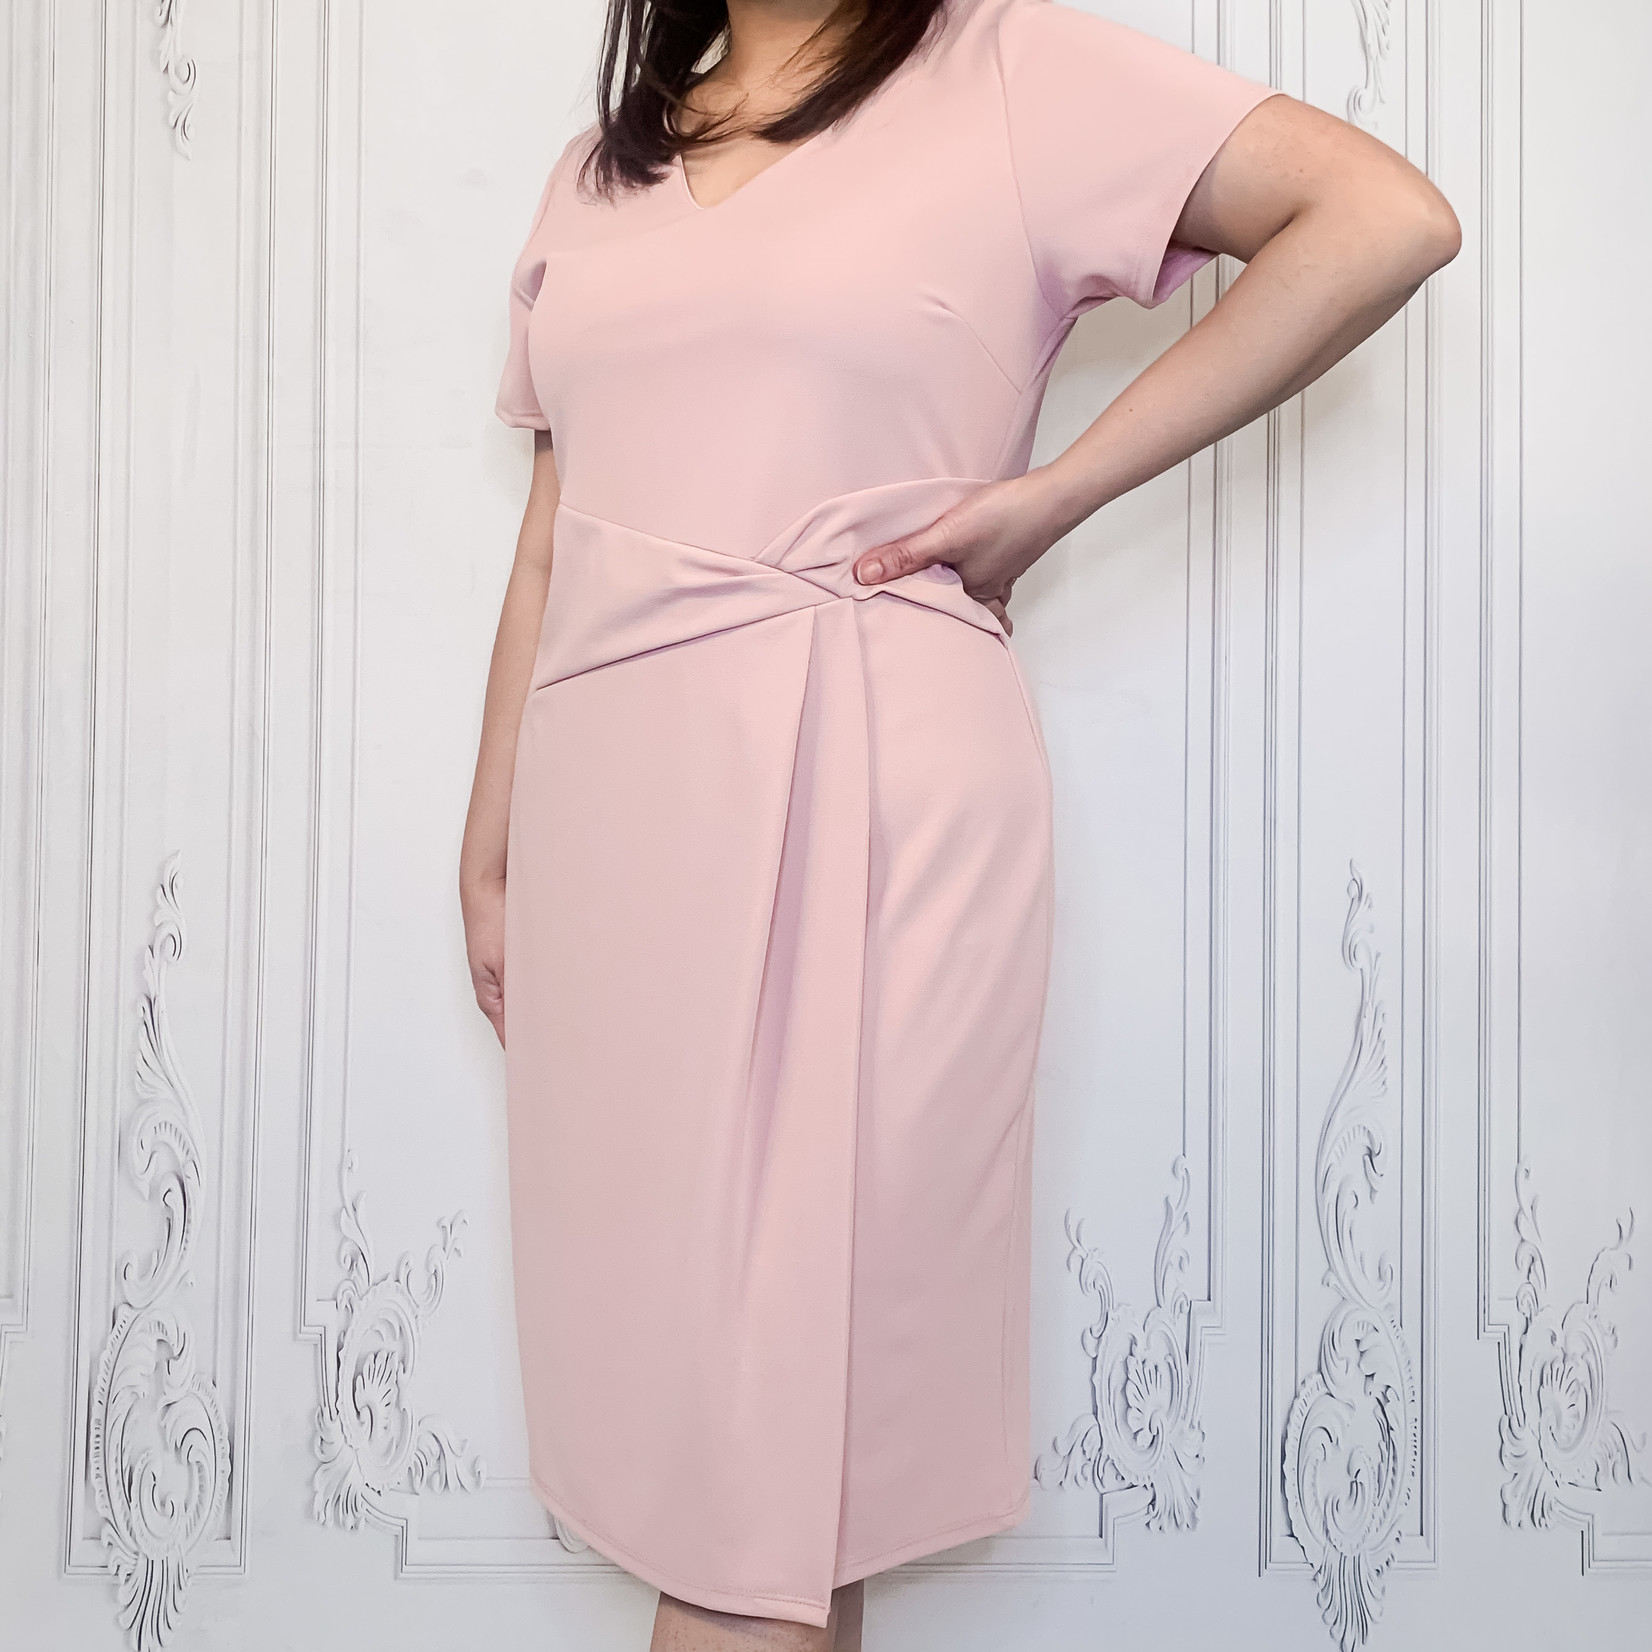 curvy cap sleeve midi dress